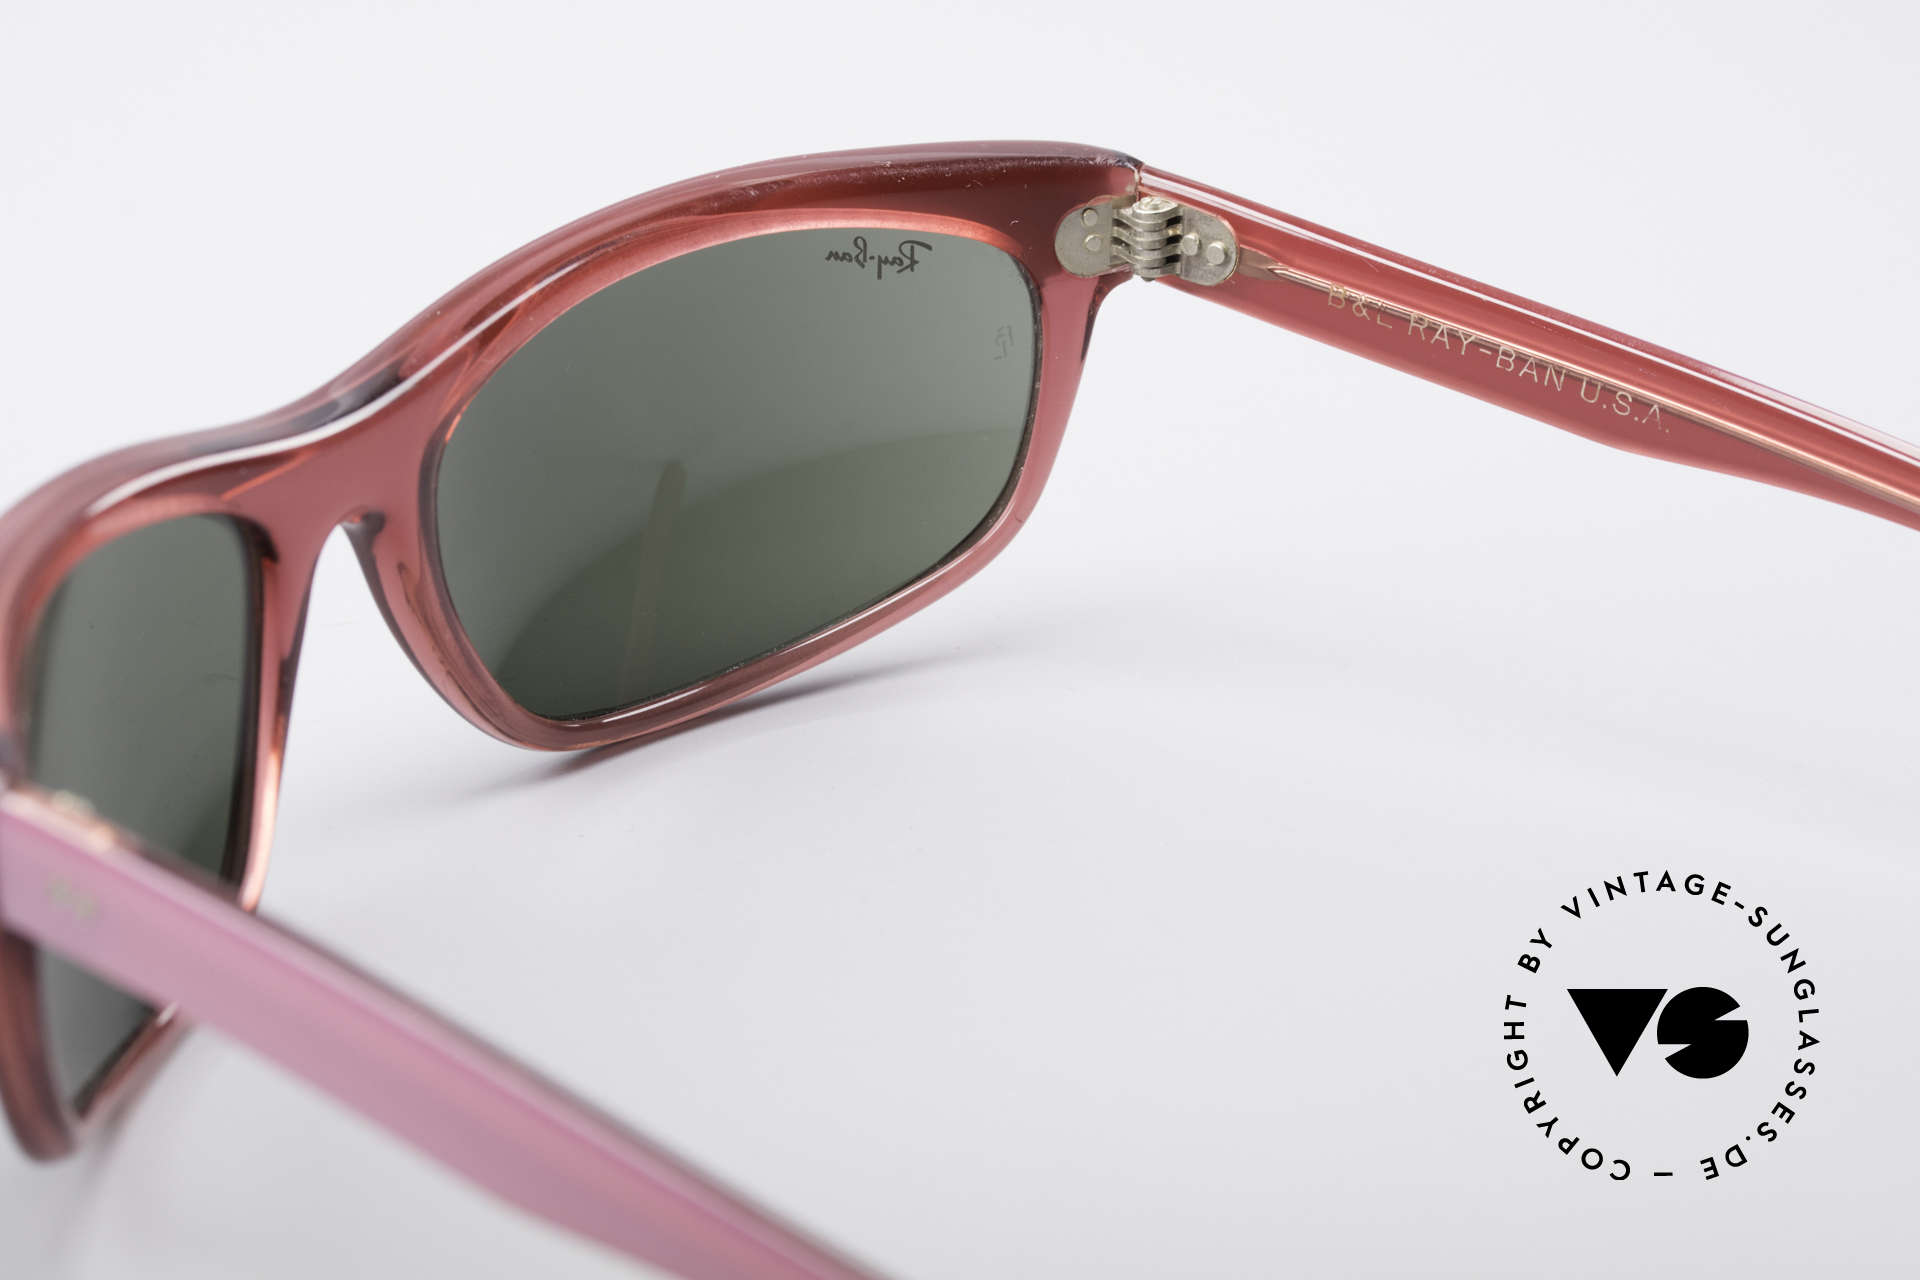 Ray Ban Balorama Clint Eastwood Shades, never worn (like all our vintage USA RAY BANS), Made for Men